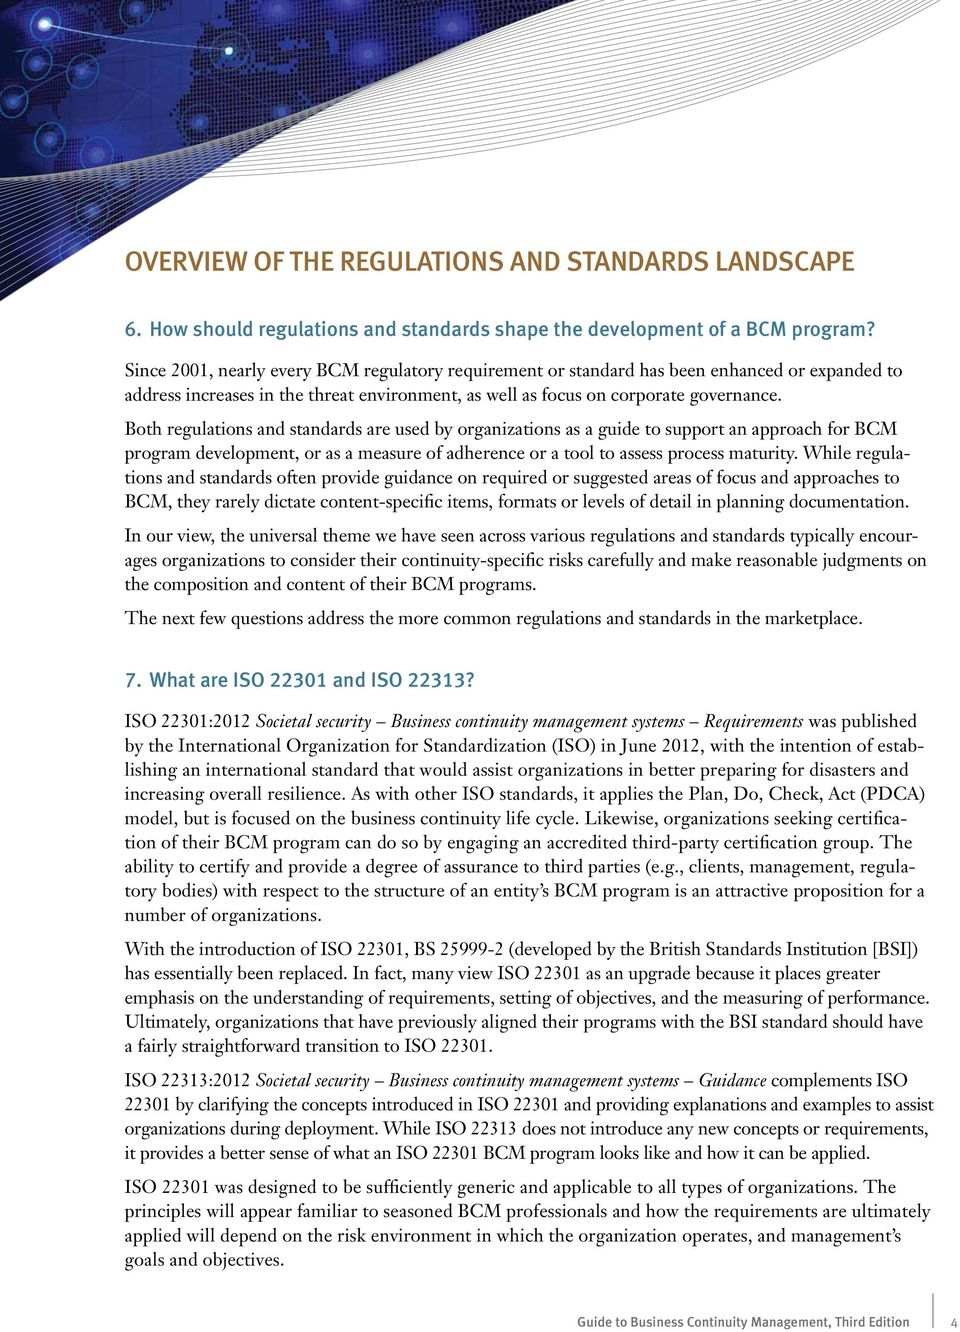 Both regulations and standards are used by organizations as a guide to support an approach for BCM program development, or as a measure of adherence or a tool to assess process maturity.